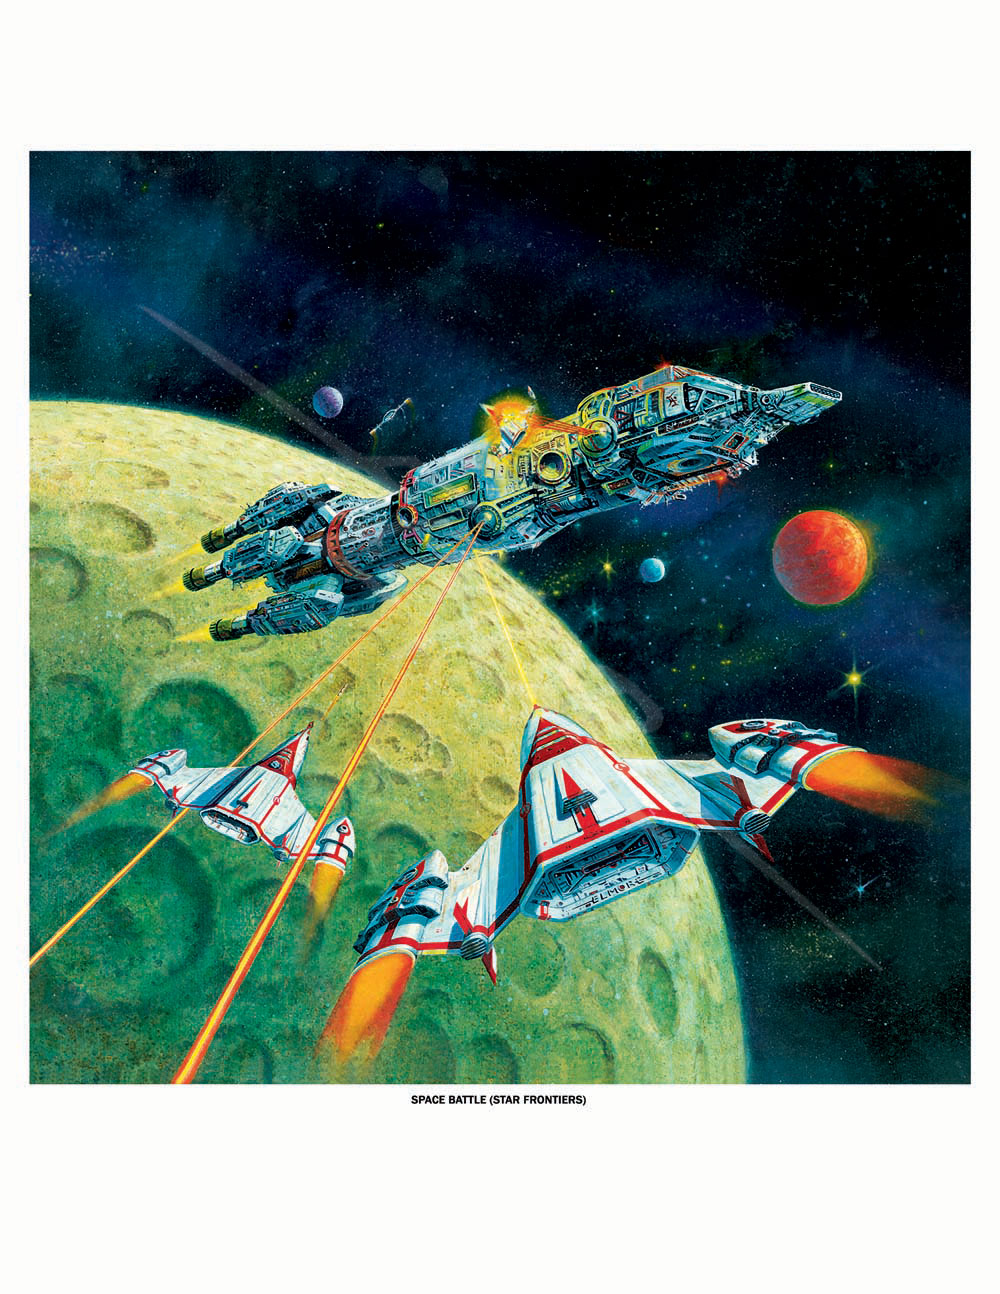 Star Frontiers 1 - Fighter Attack